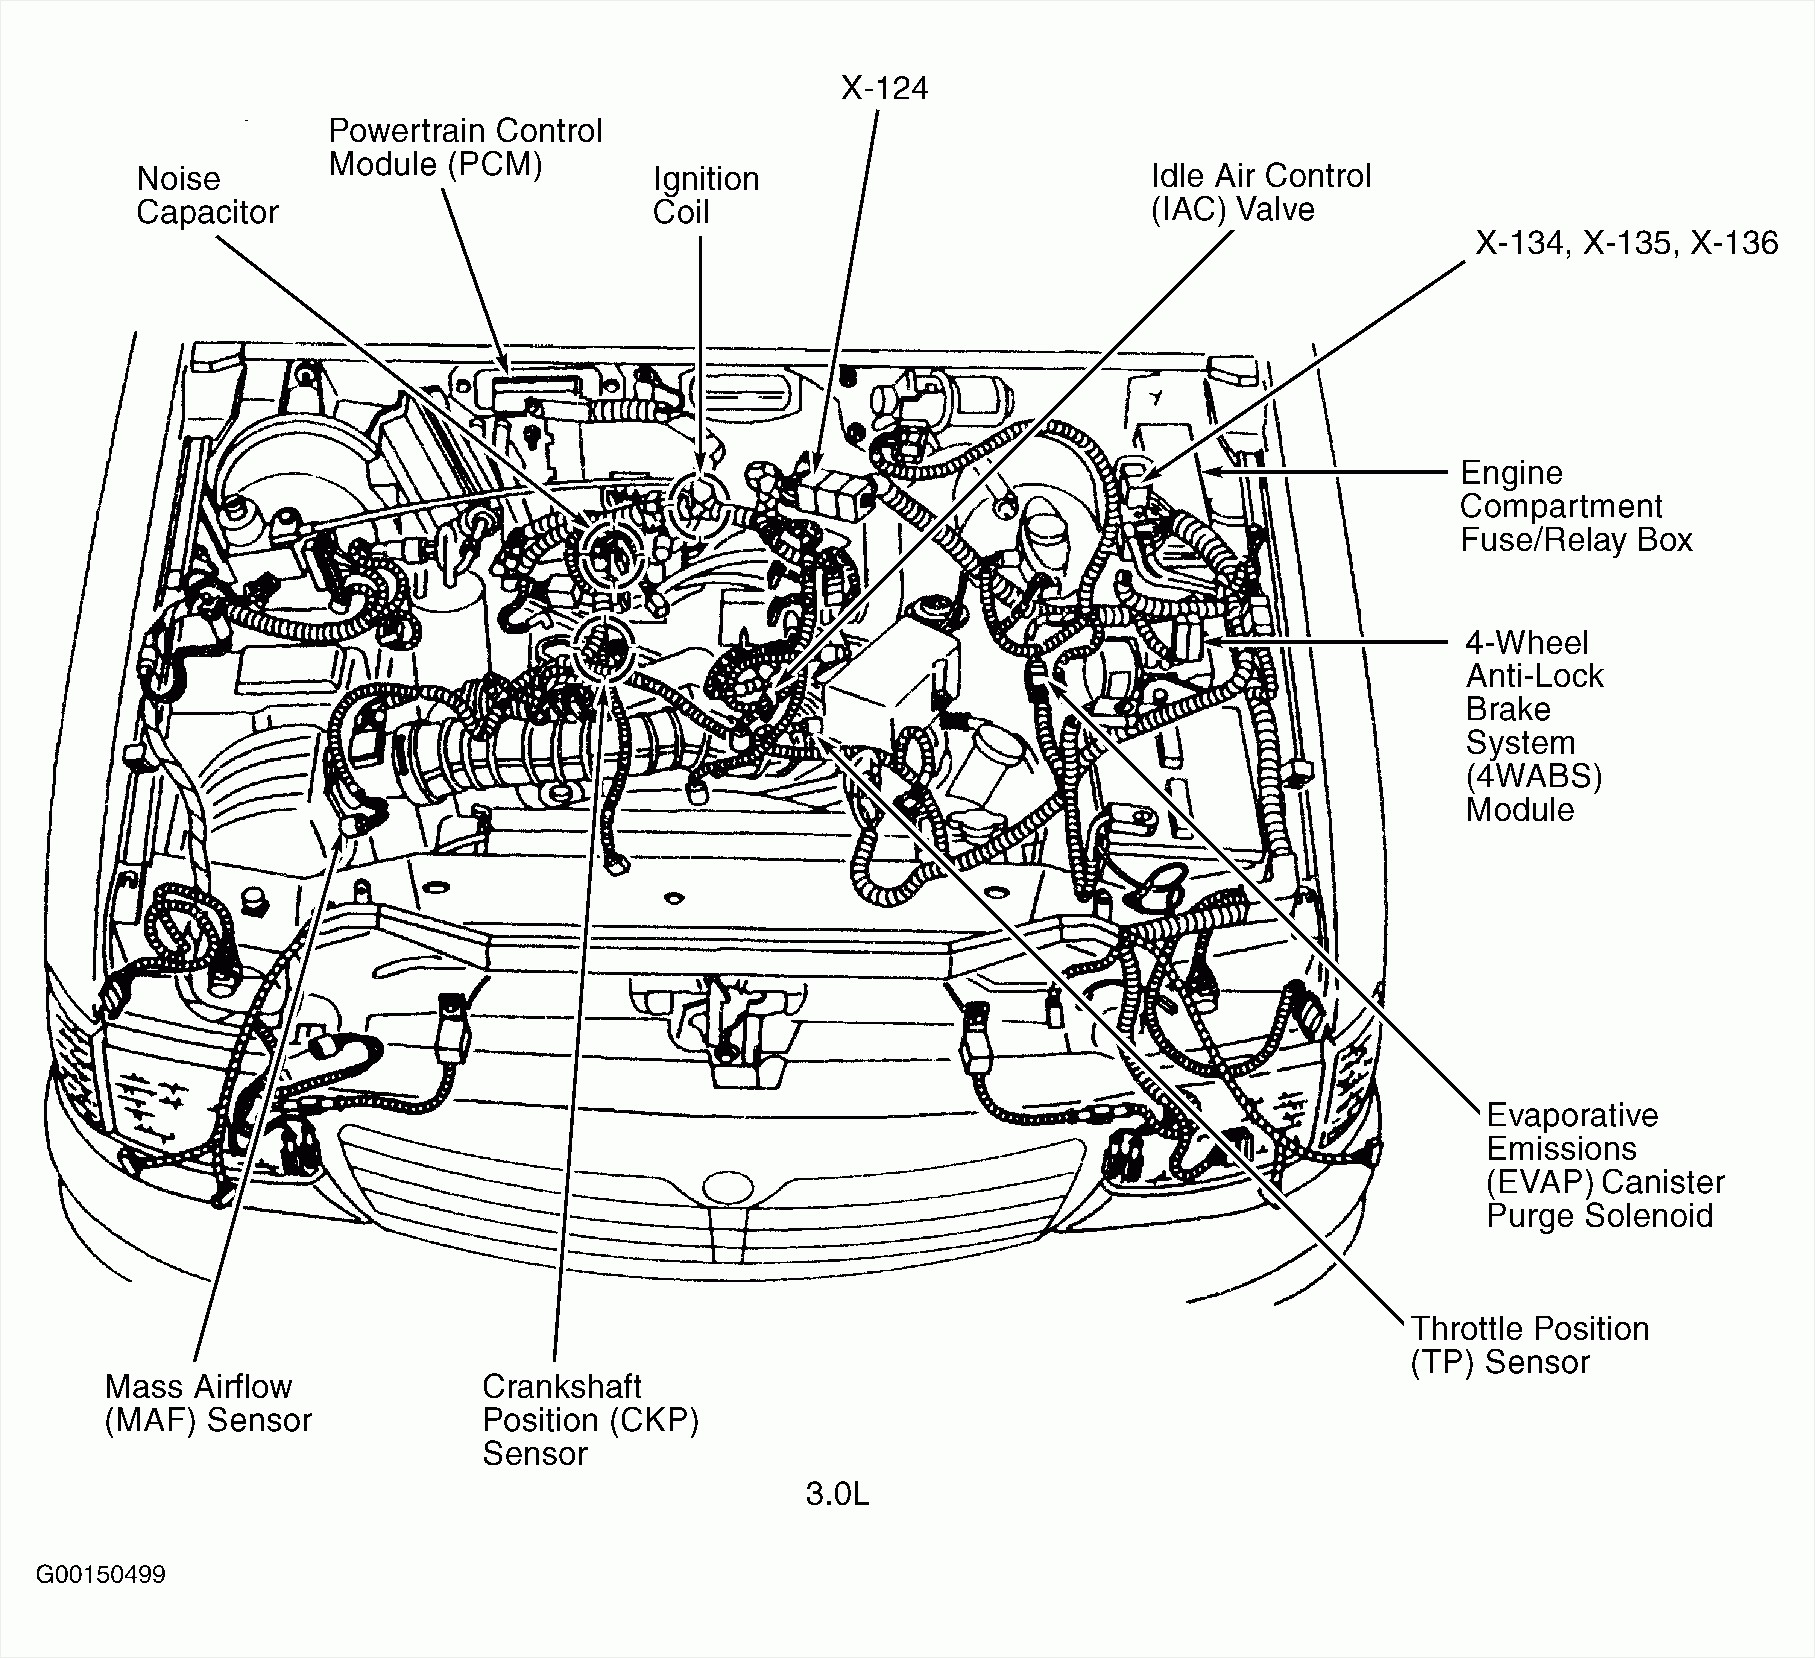 mazda 3 0 engine diagram 3 7 fearless wonder de \u2022mazda 3 0 v6 engine diagram 2 10 sandybloom nl u2022 rh 2 10 sandybloom nl 1993 mazda 3 0 motor diagram 1997 mazda mpv 3 0 engine diagram